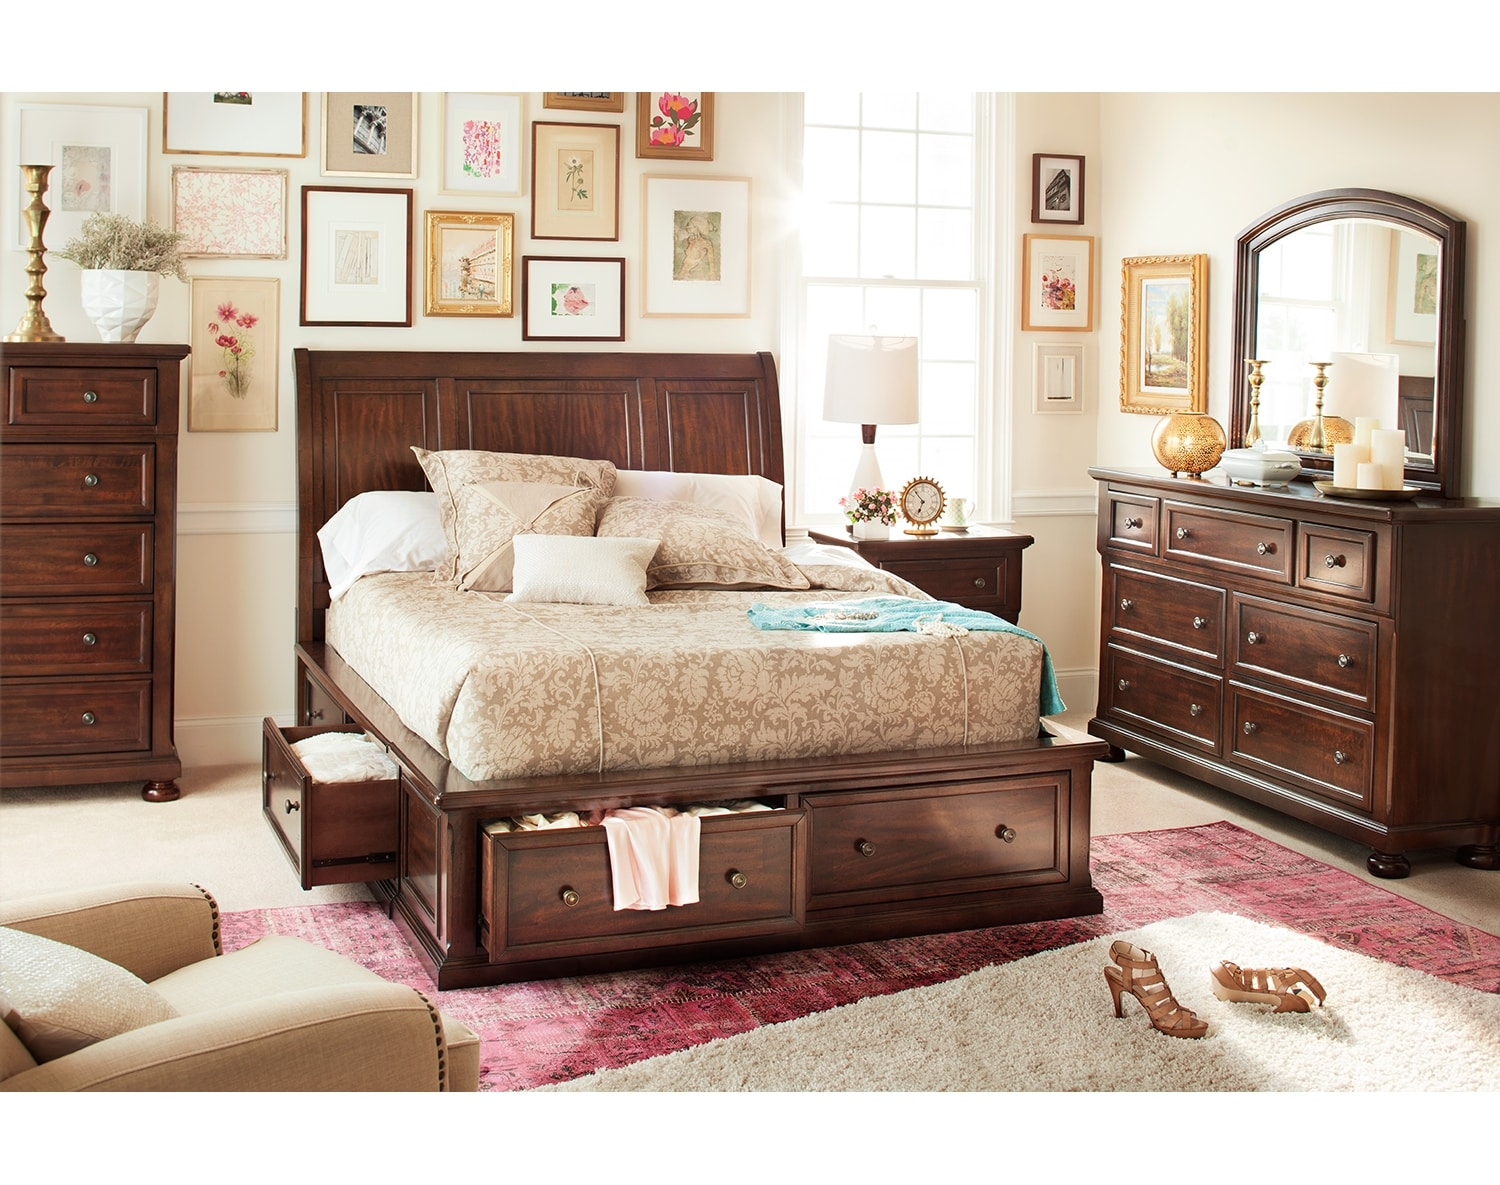 The Hanover Storage Bedroom Collection - Cherry  sc 1 st  American Signature Furniture : bedroom chest storage  - Aquiesqueretaro.Com